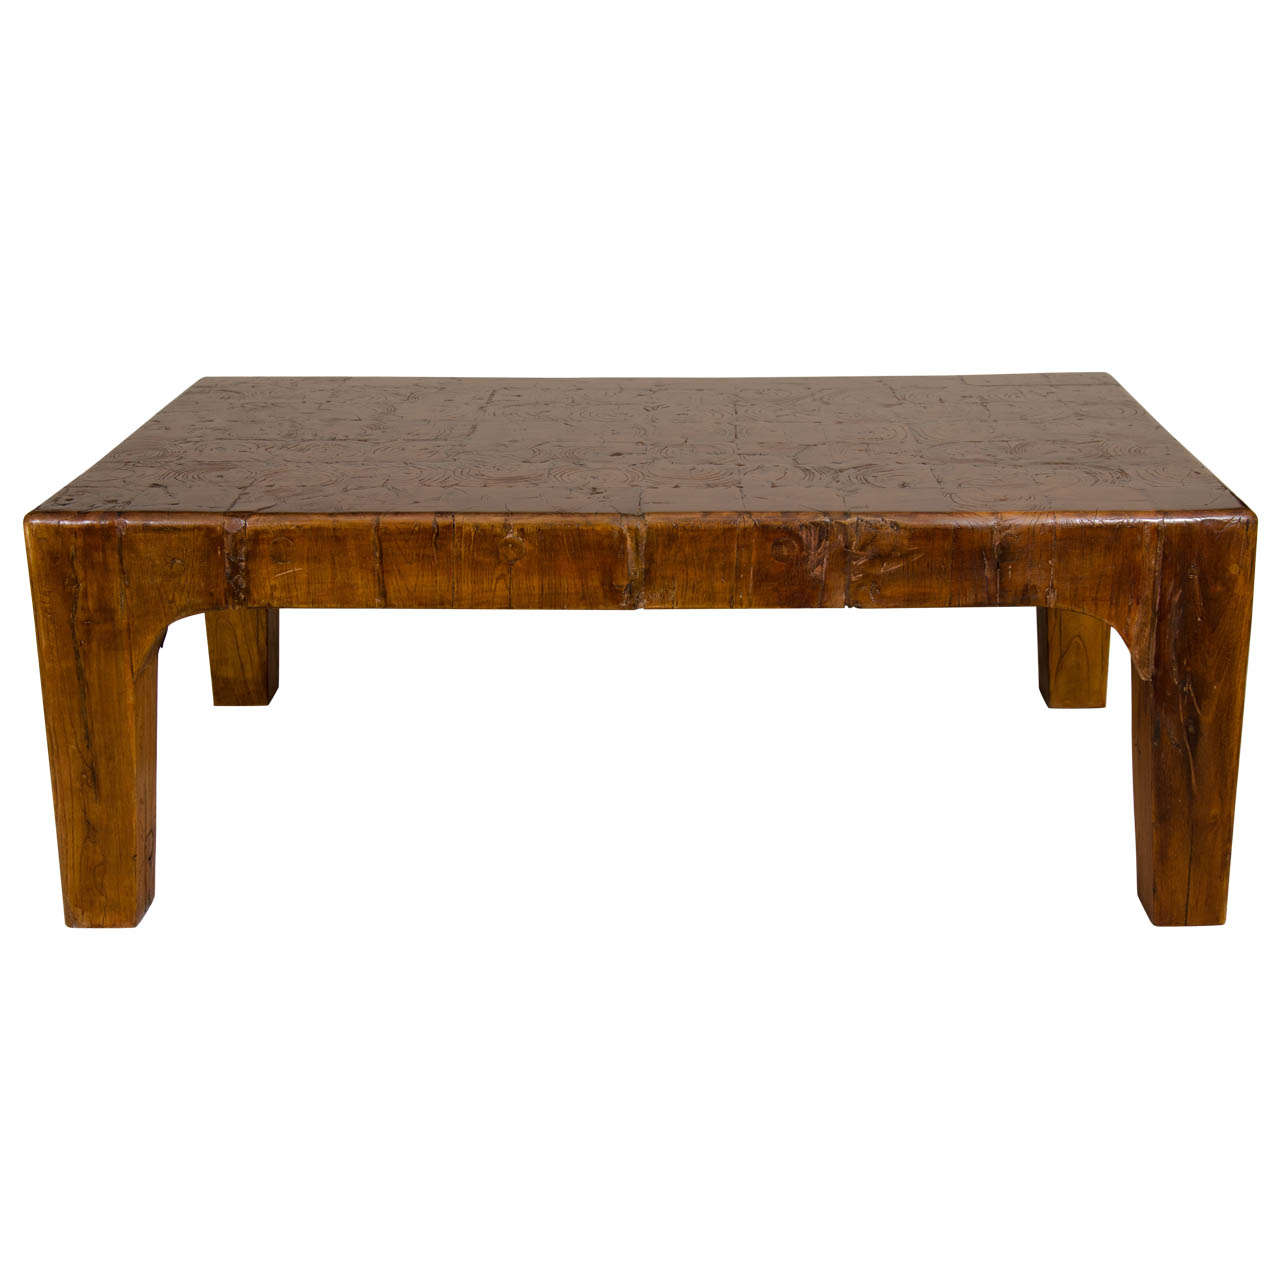 A Mid Century Solid Wood Rectangular Shaped Coffee Or Cocktail Table At 1stdibs